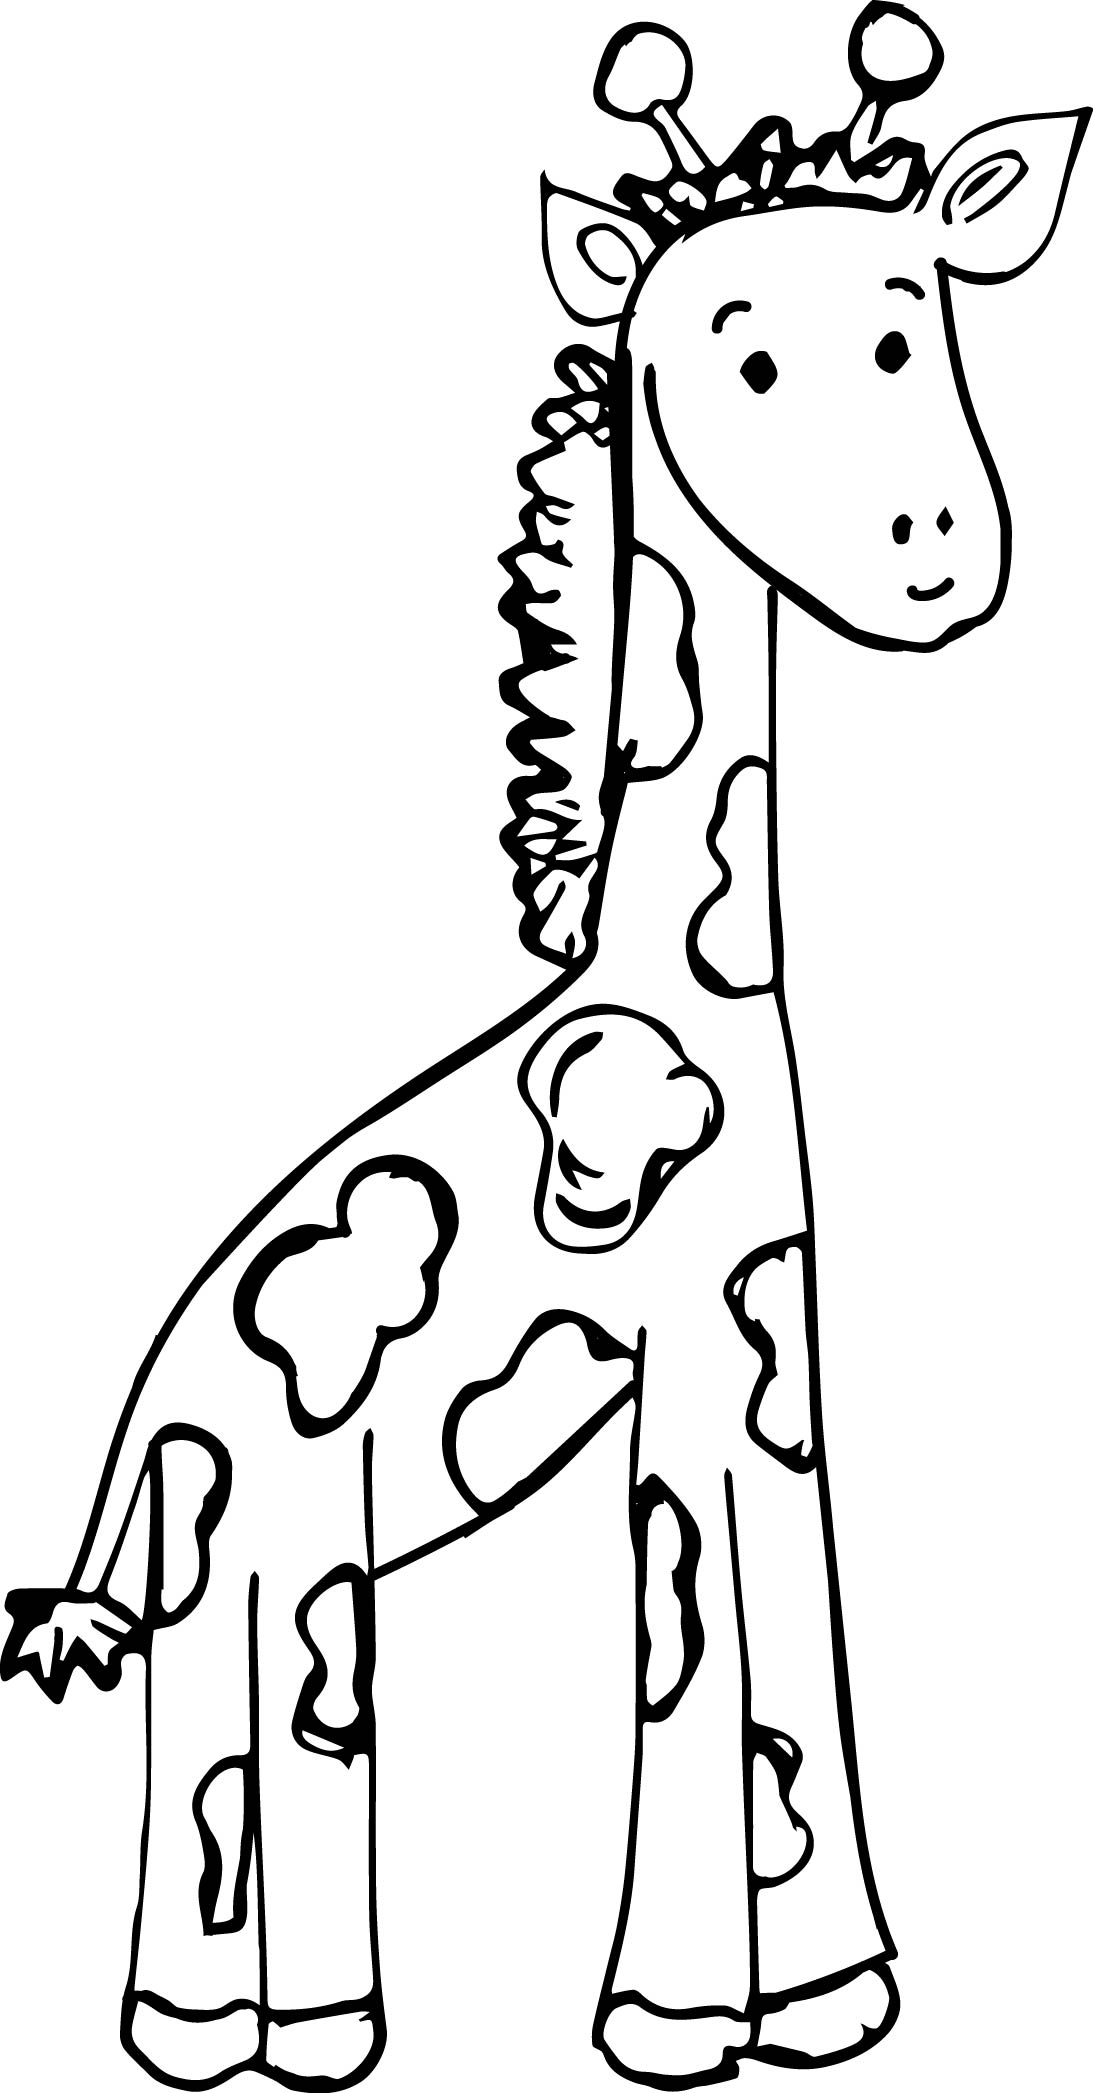 Giraffe Color Page Giraffe Coloring Page Animals Baby Giraffe Coloring Pages